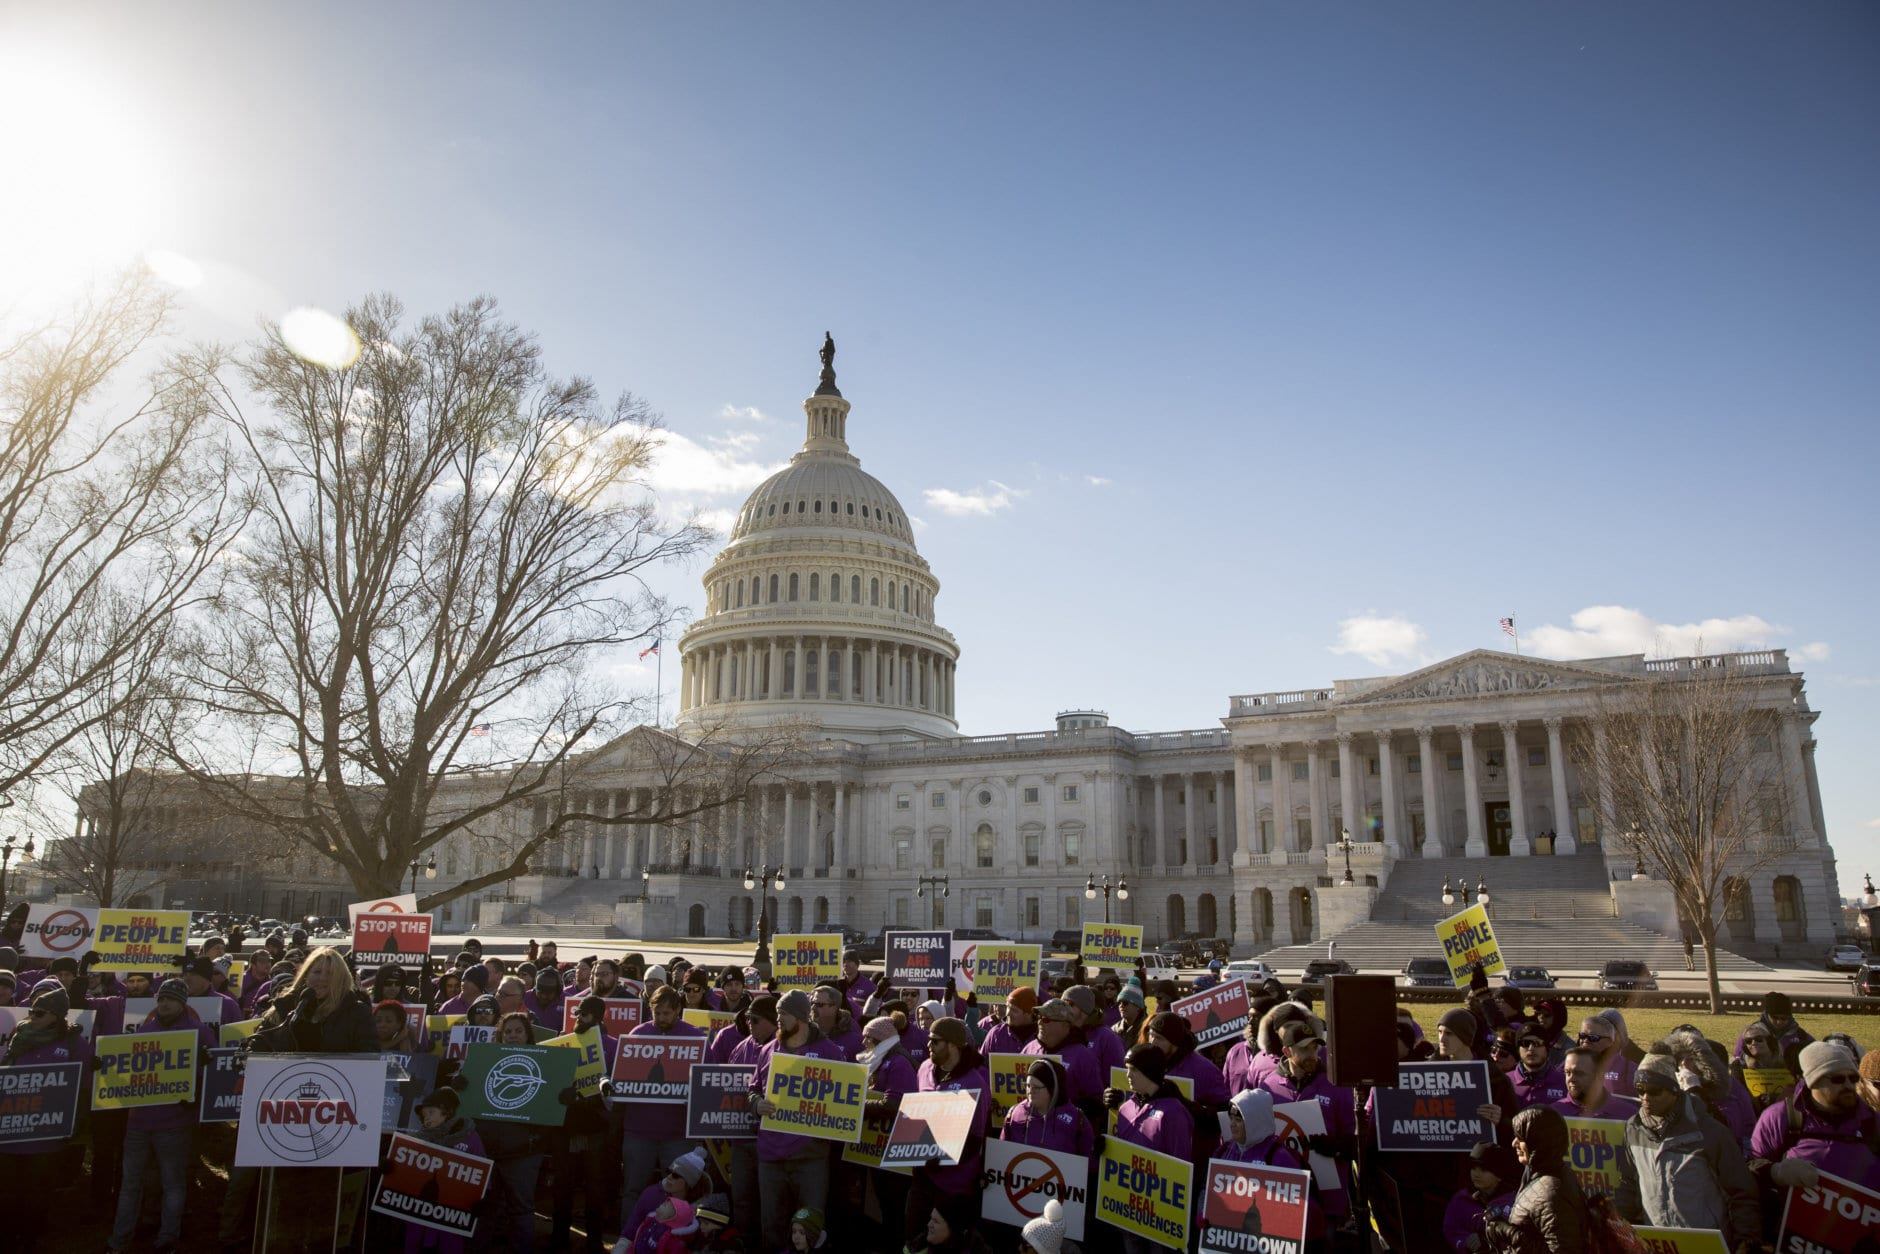 Union members protest the government shutdown on Capitol Hill in Washington, Thursday, Jan. 10, 2019. (AP Photo/Andrew Harnik)